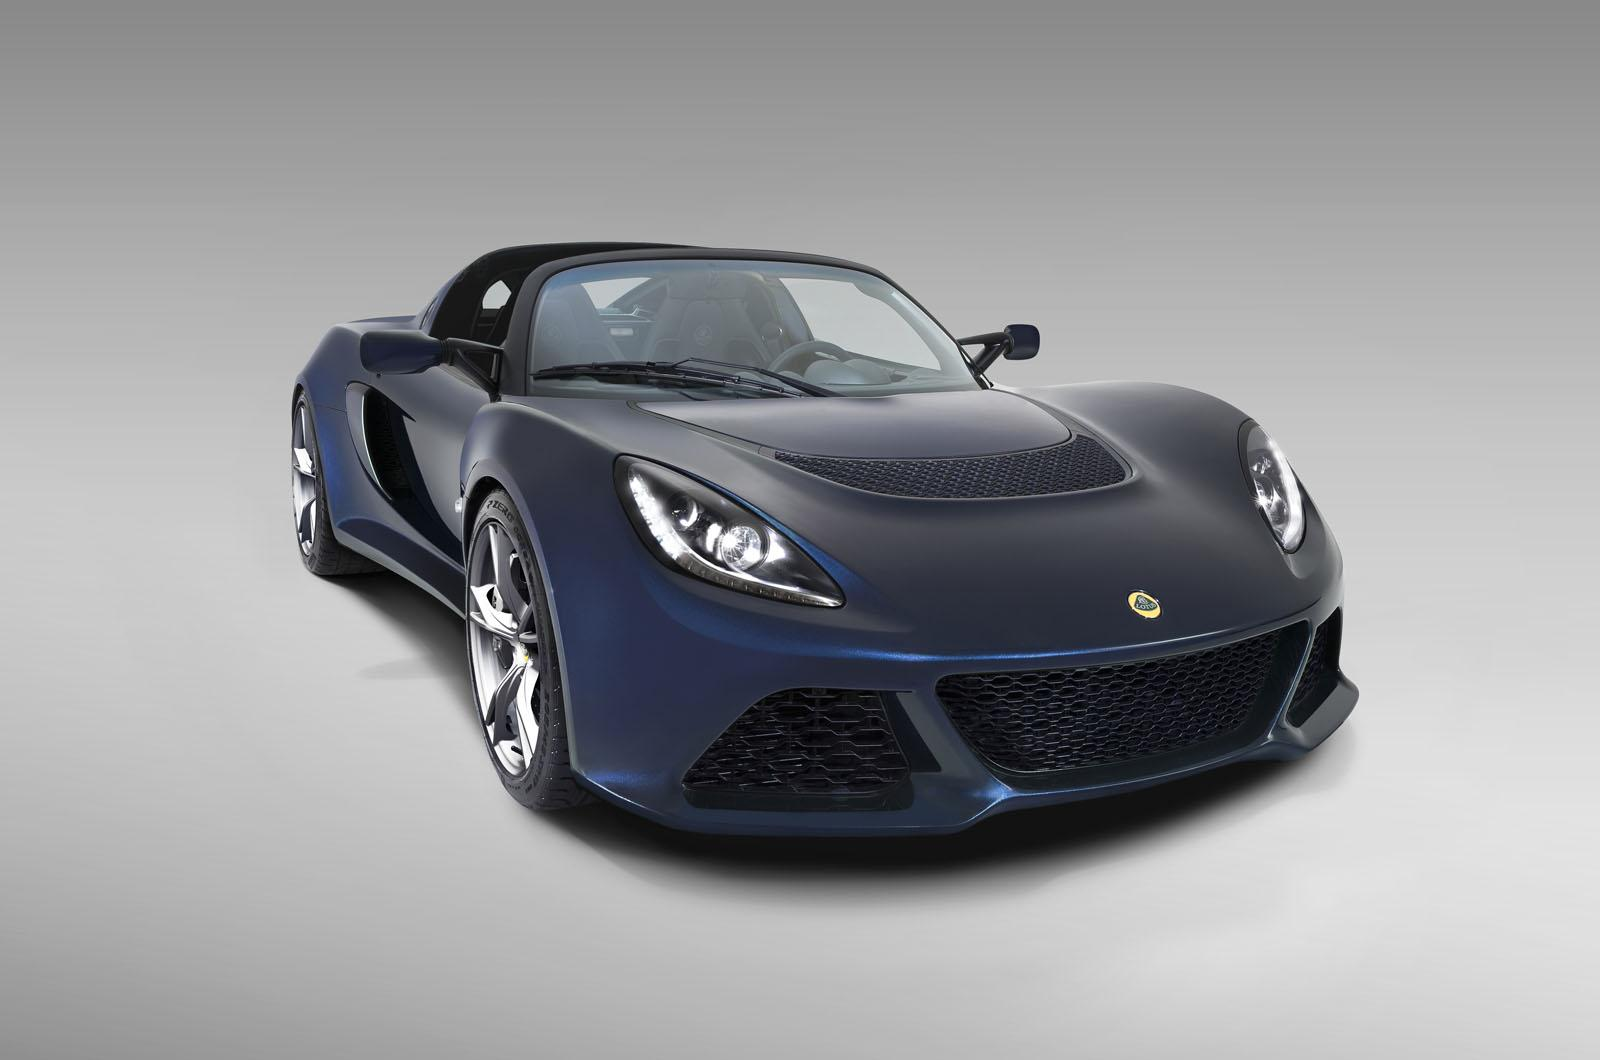 auto opini o genebra lotus exige s roadster. Black Bedroom Furniture Sets. Home Design Ideas